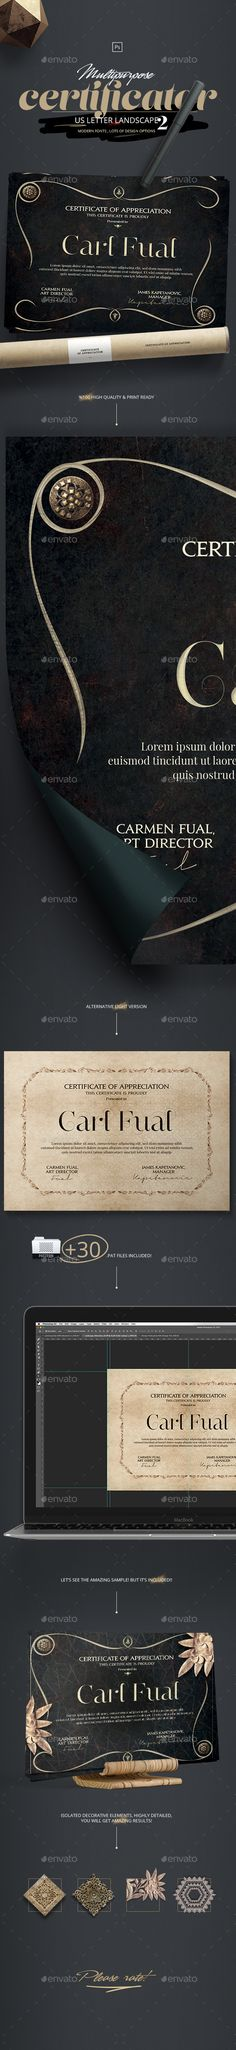 163 Best Certificate Template Design Images On Pinterest In 2018